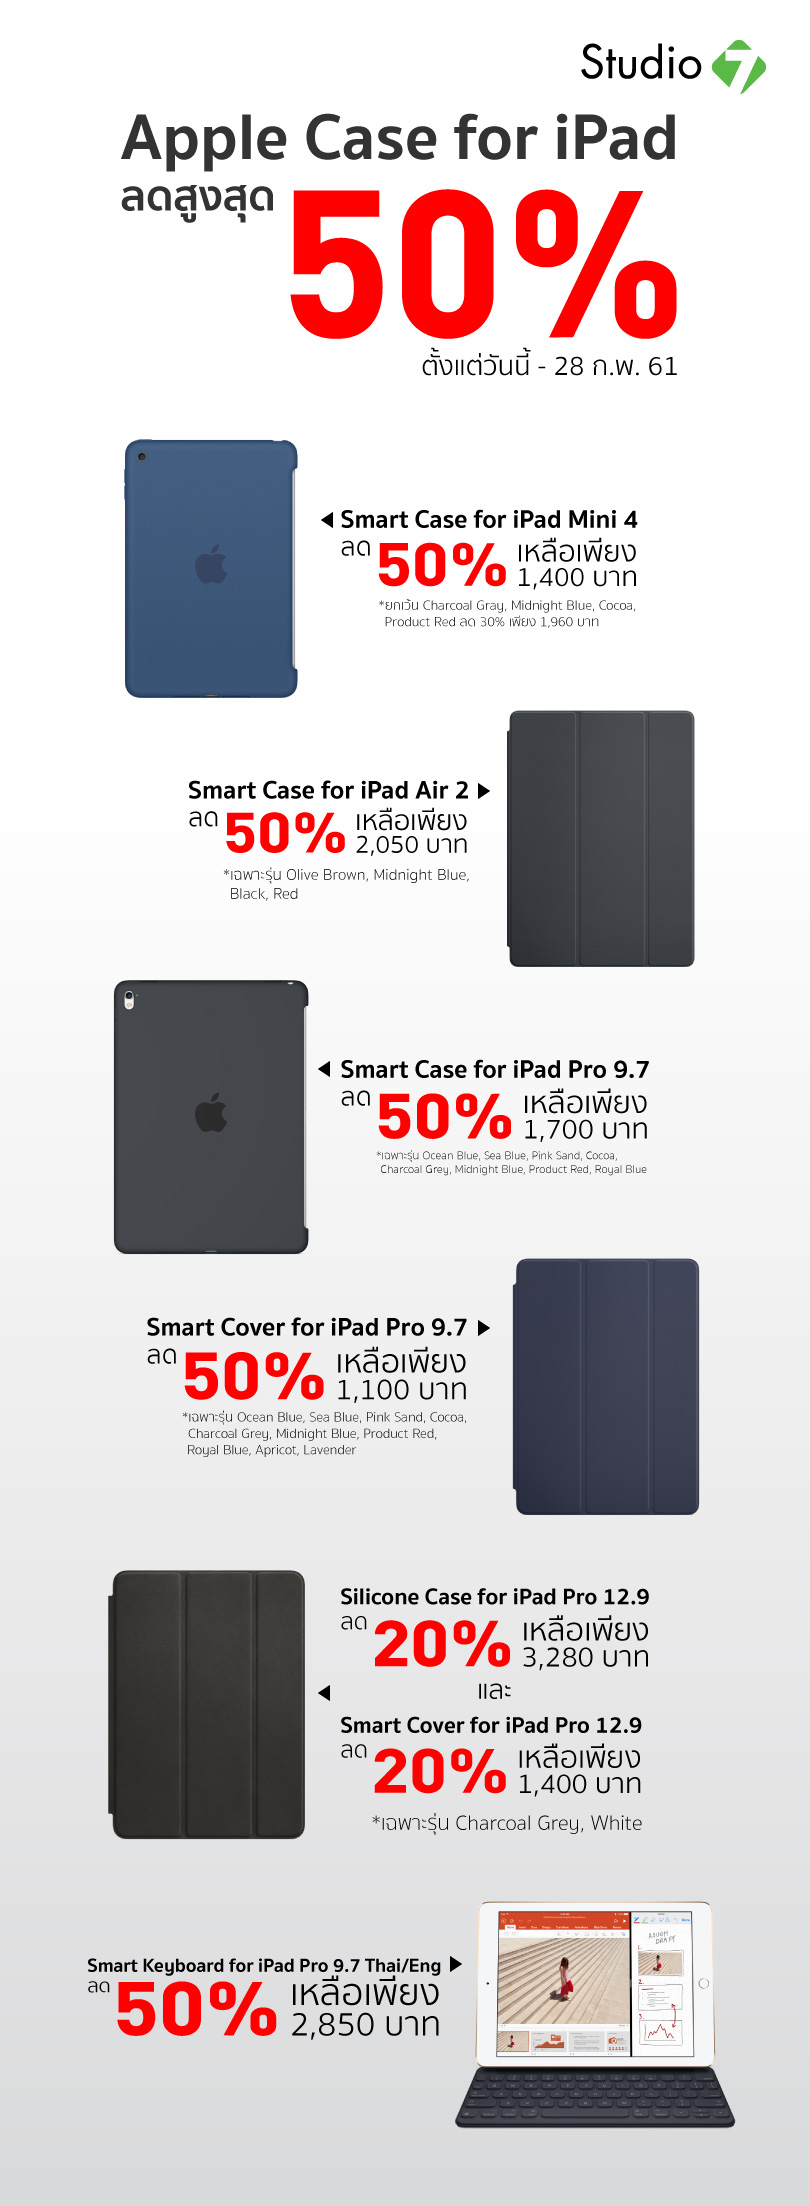 Studio7 Promotion Case Ipad Discount 50 Percent Jan Feb 18